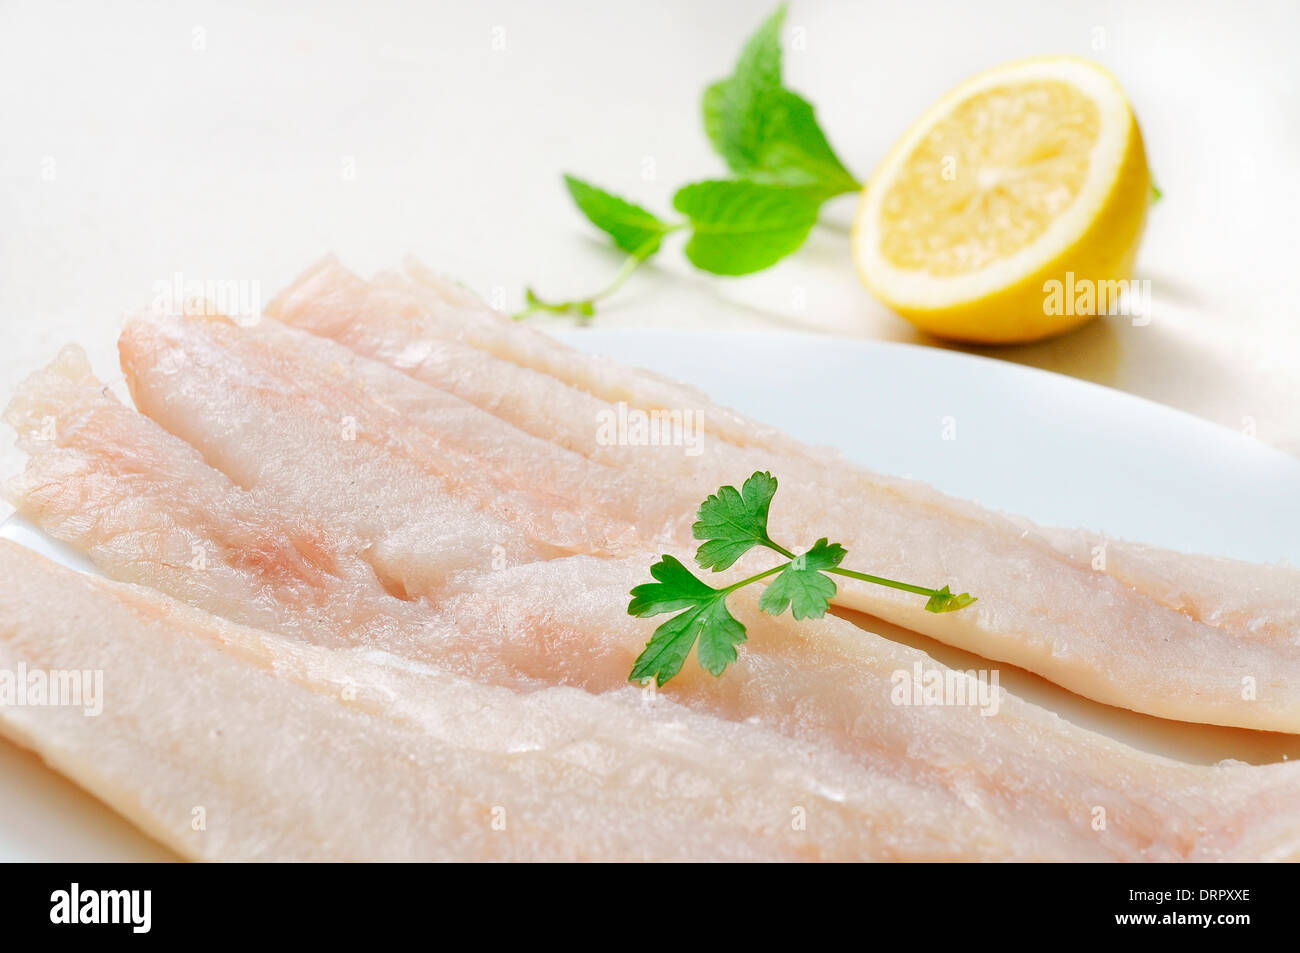 closeup of a plate with some raw pollack fillets - Stock Image